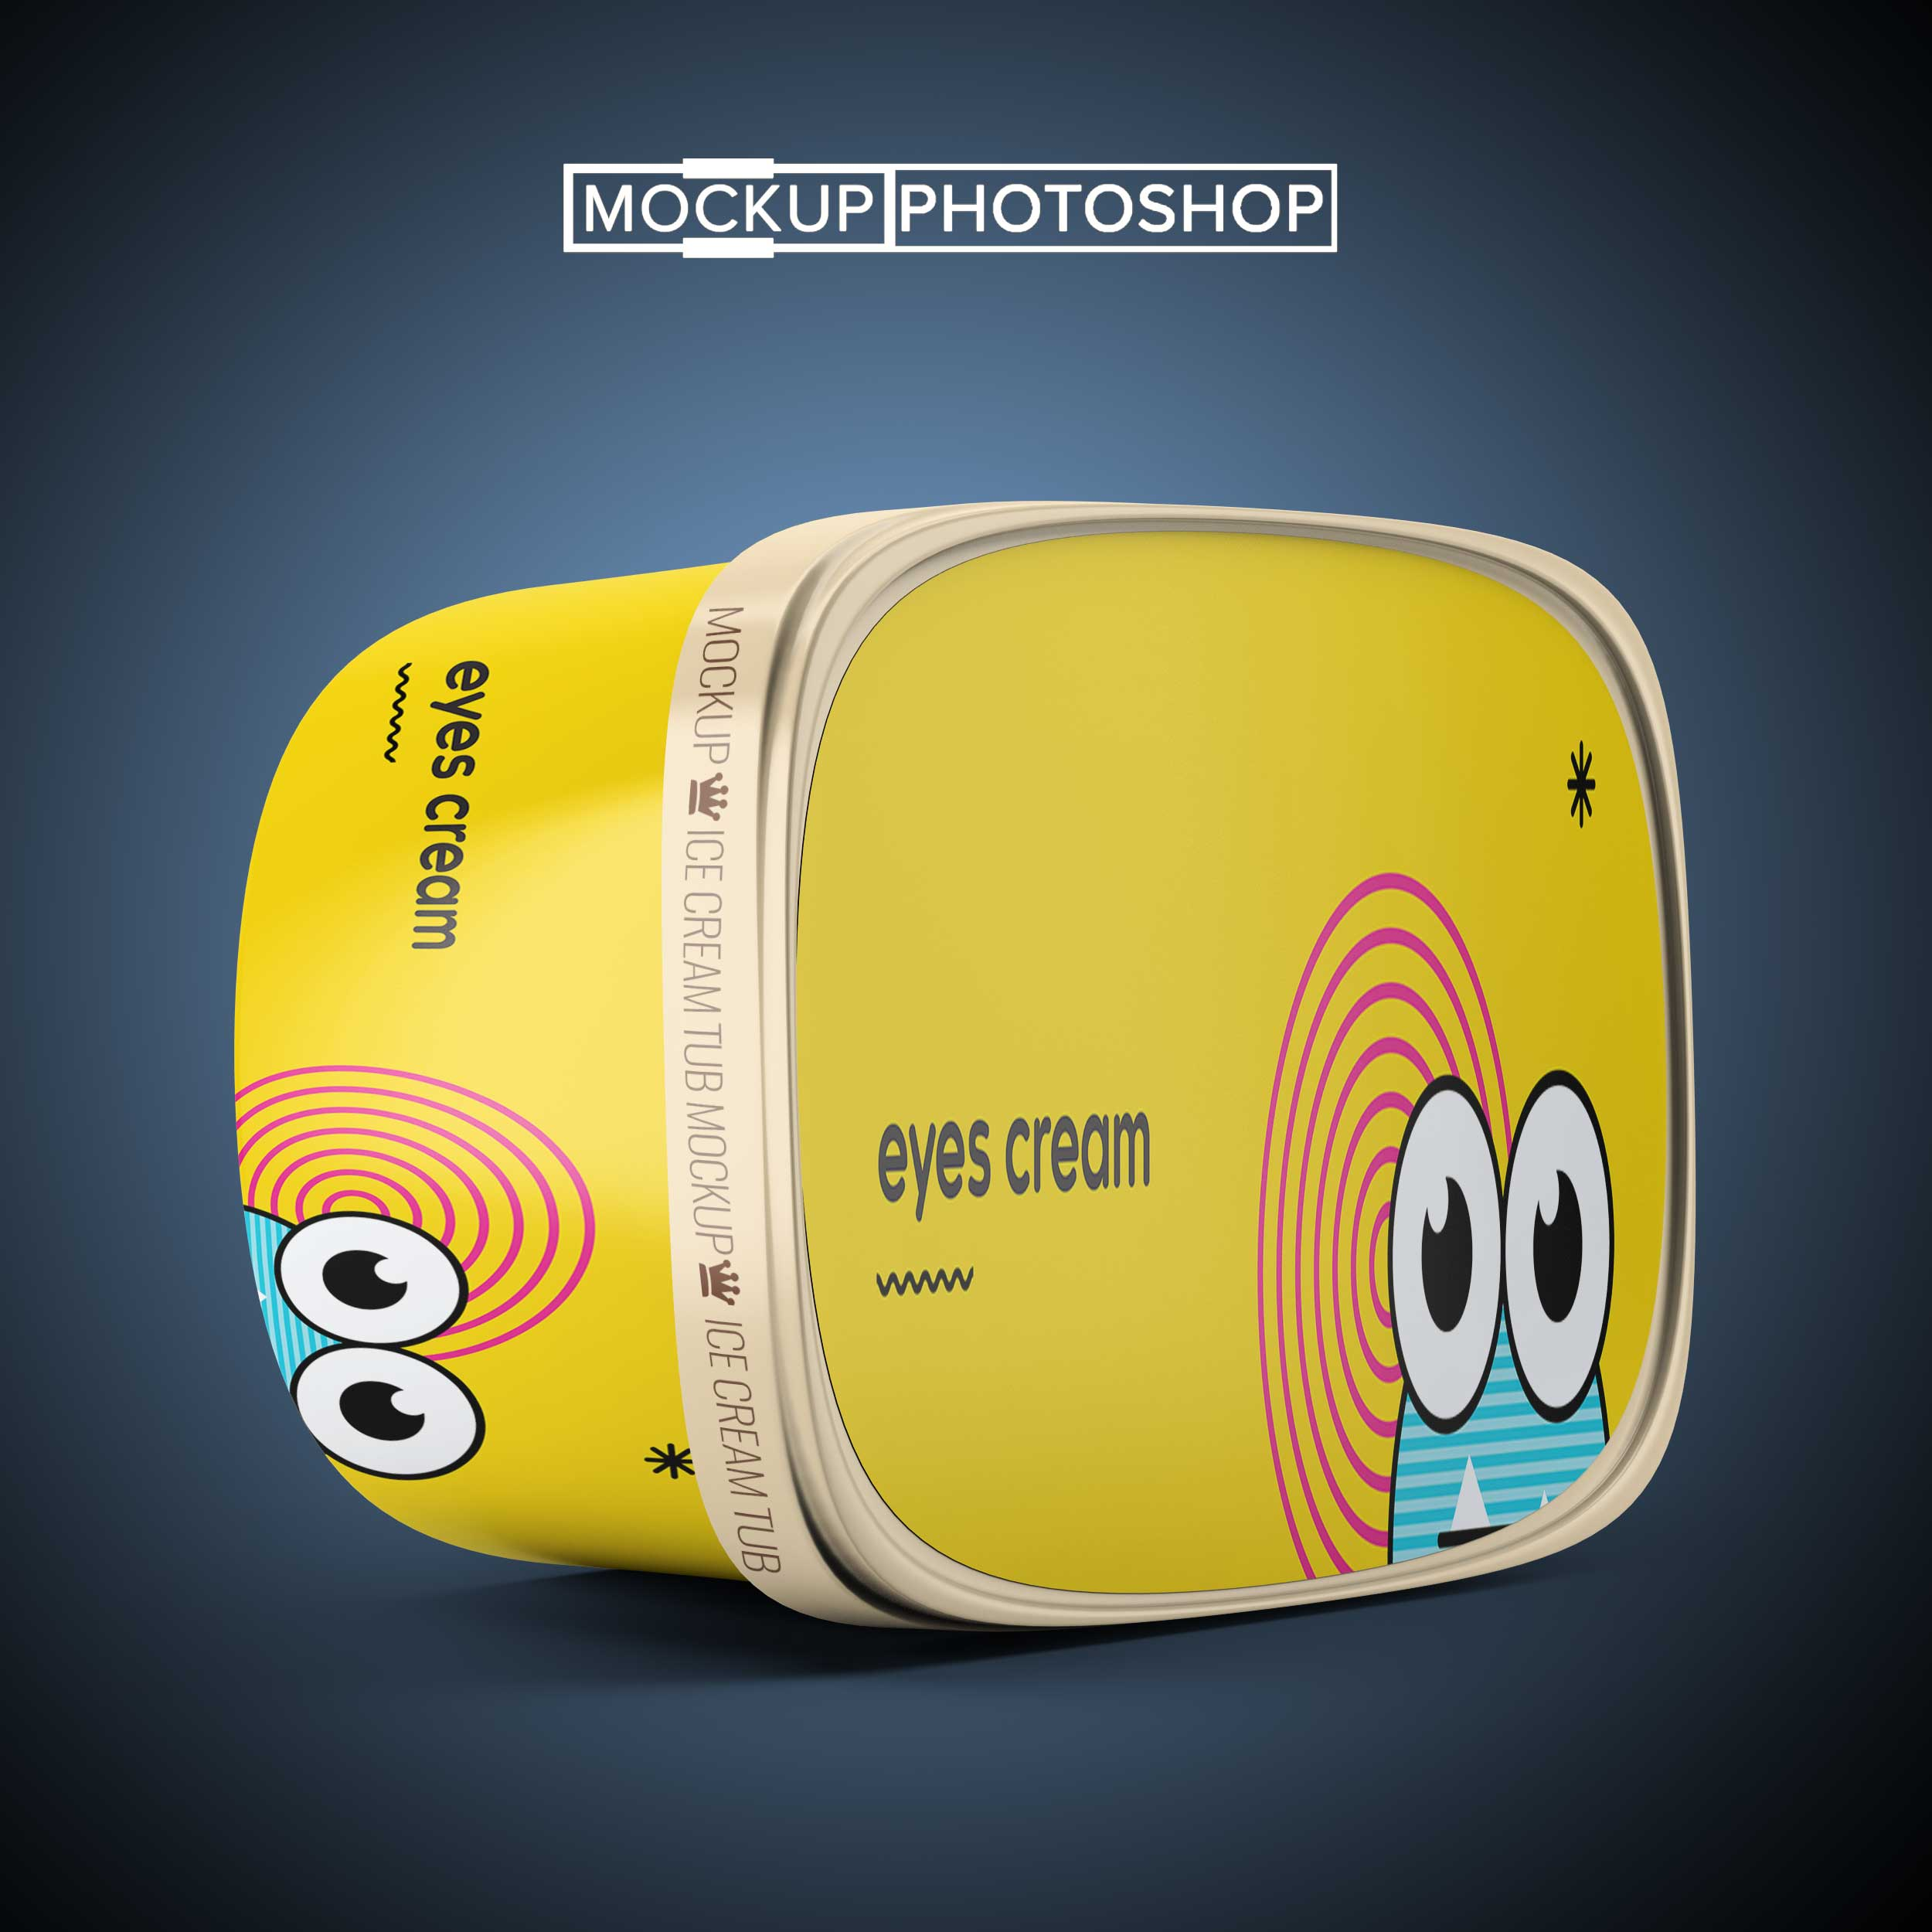 New Ice Cream Container Mockup